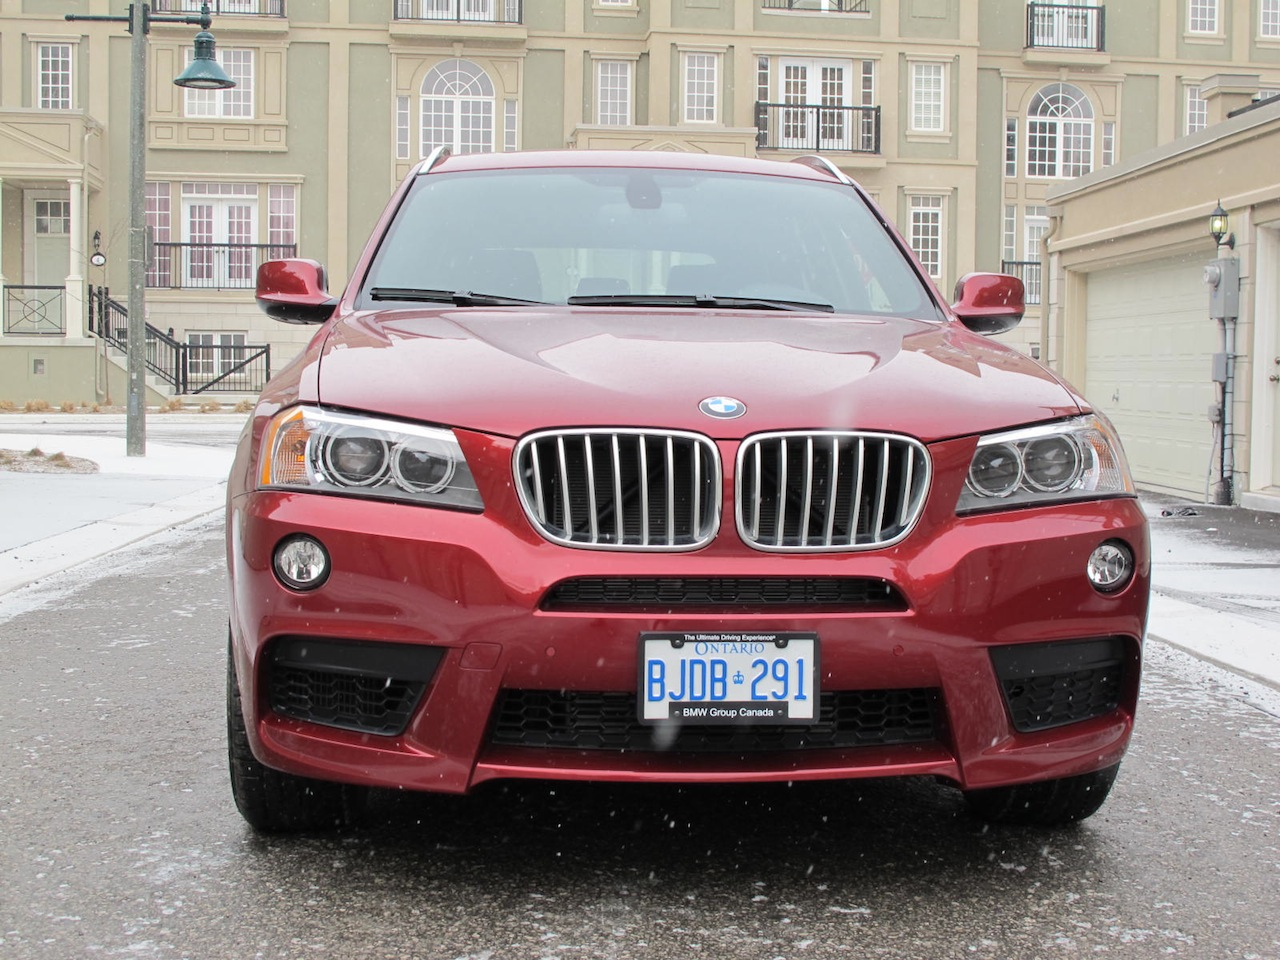 2013 BMW X3 XDrive35i Red Full Front